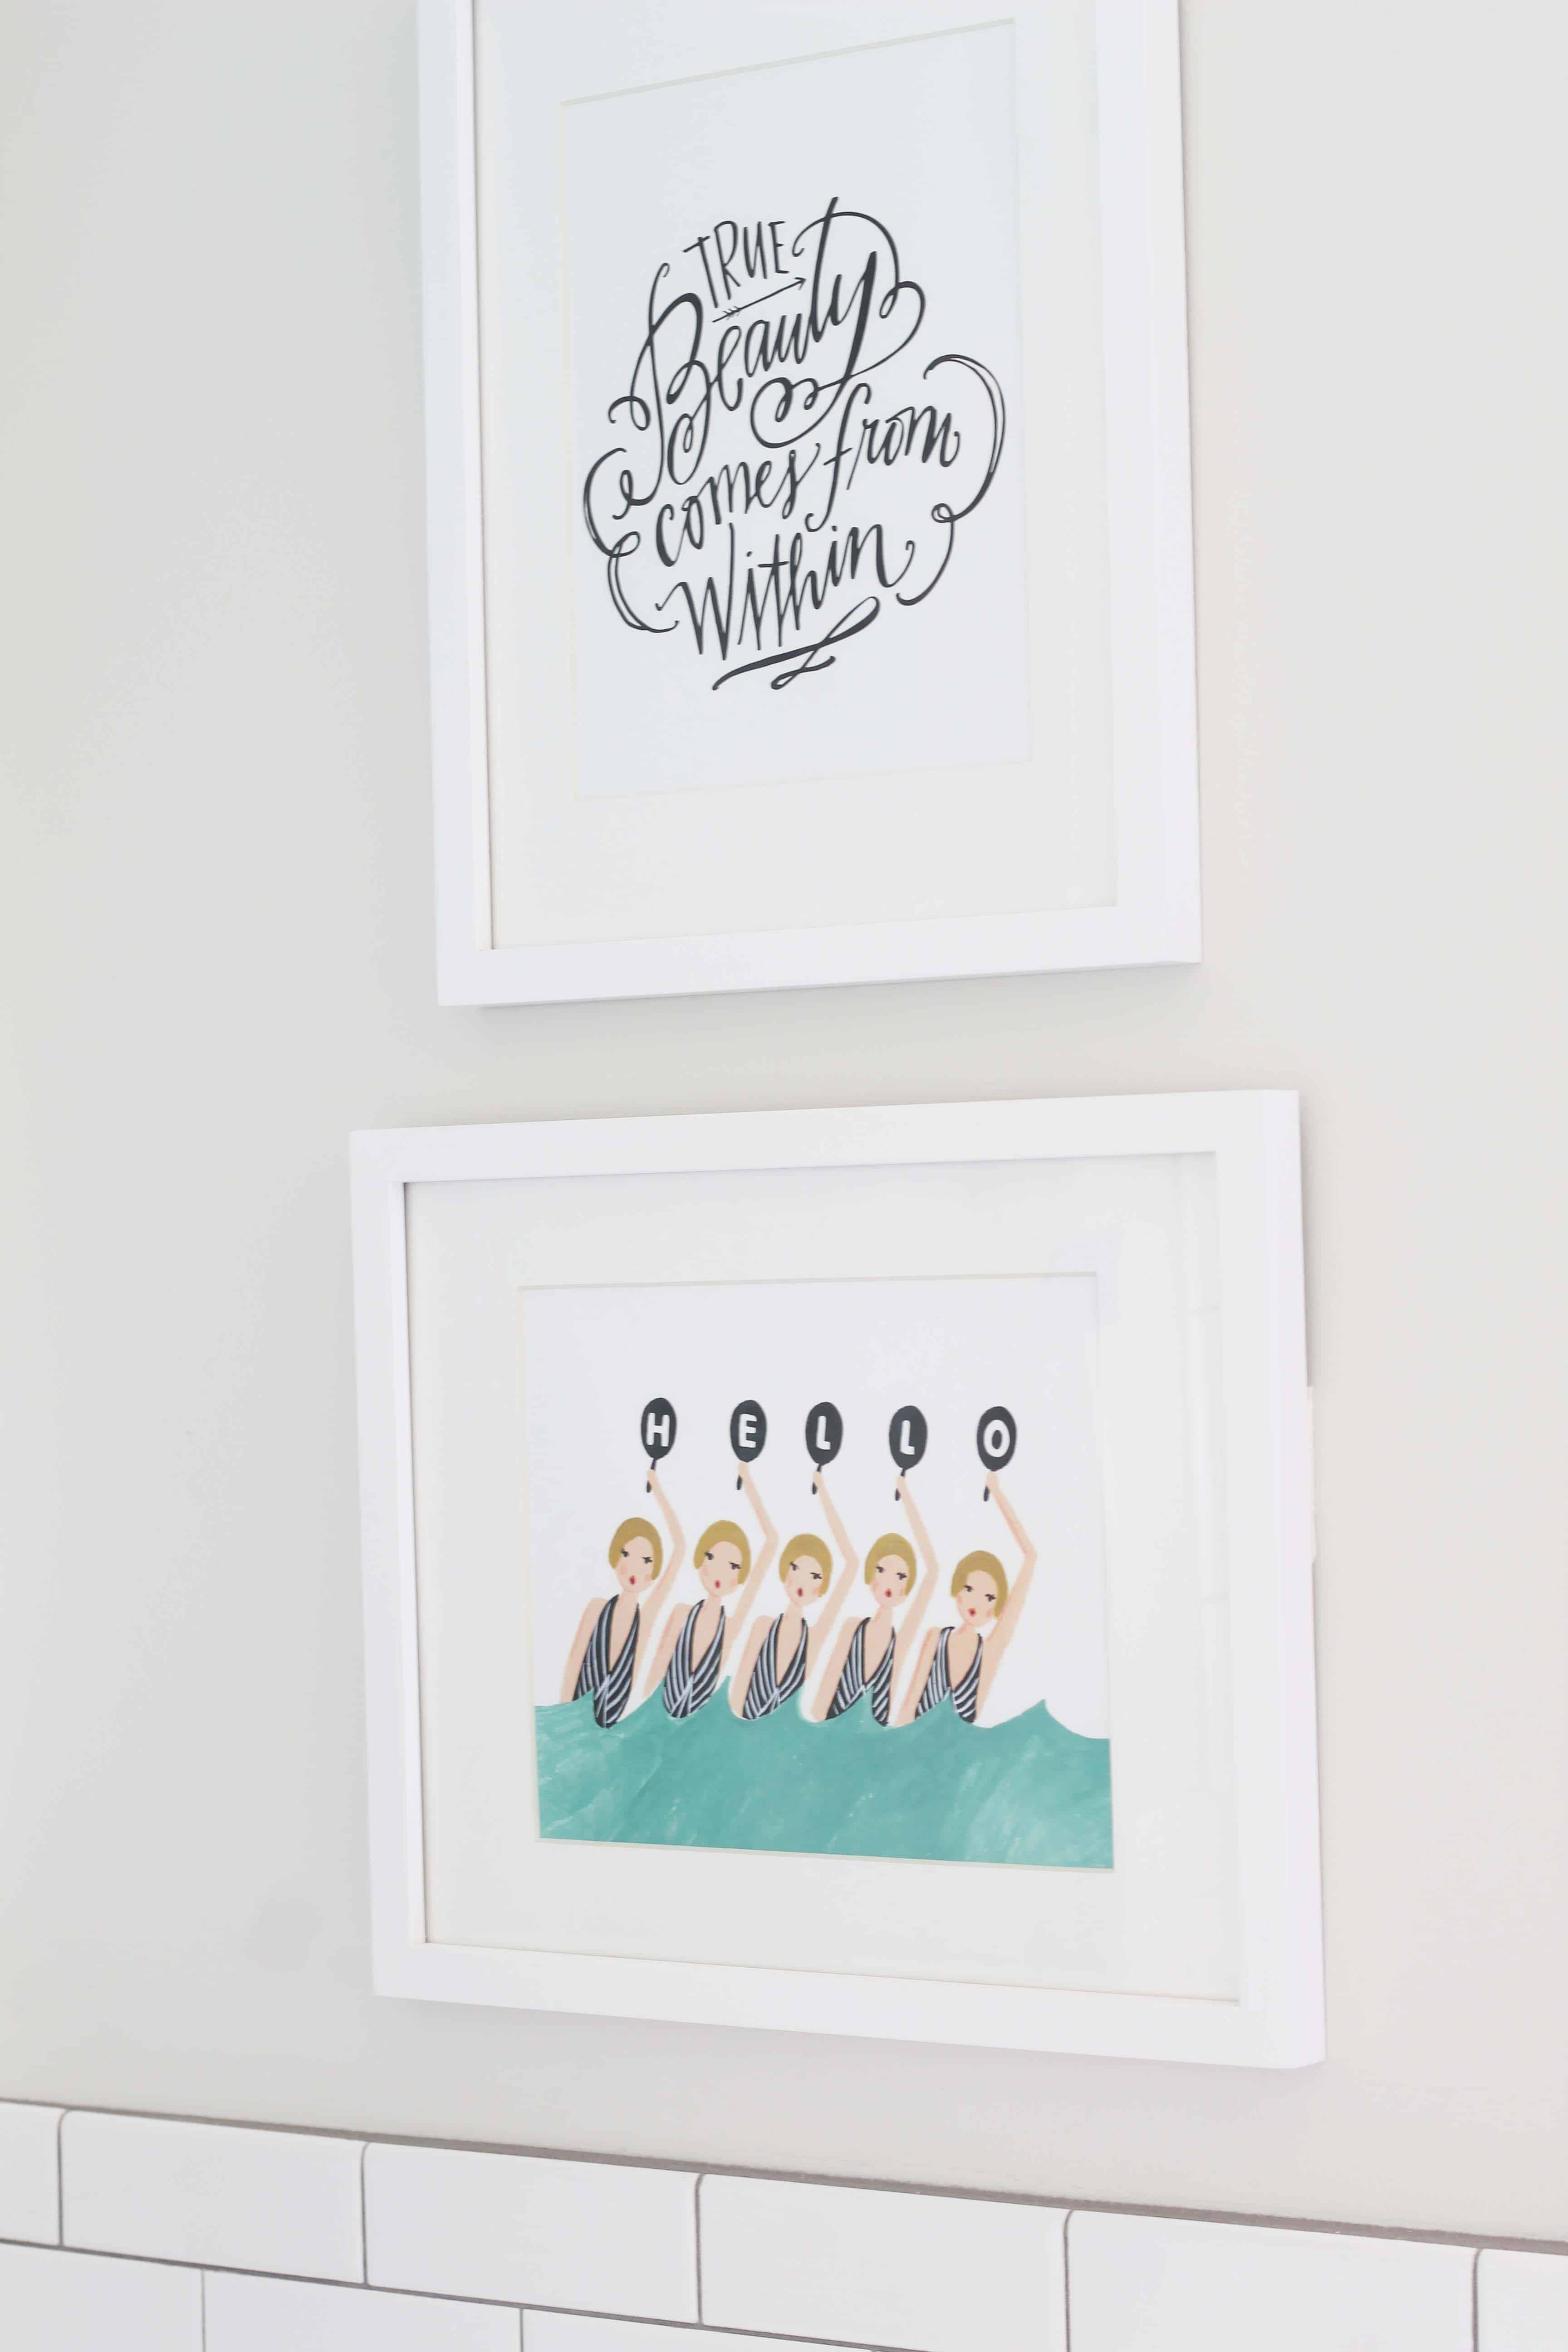 lindsay letters word art, rifle paper co synchronized swimmers print